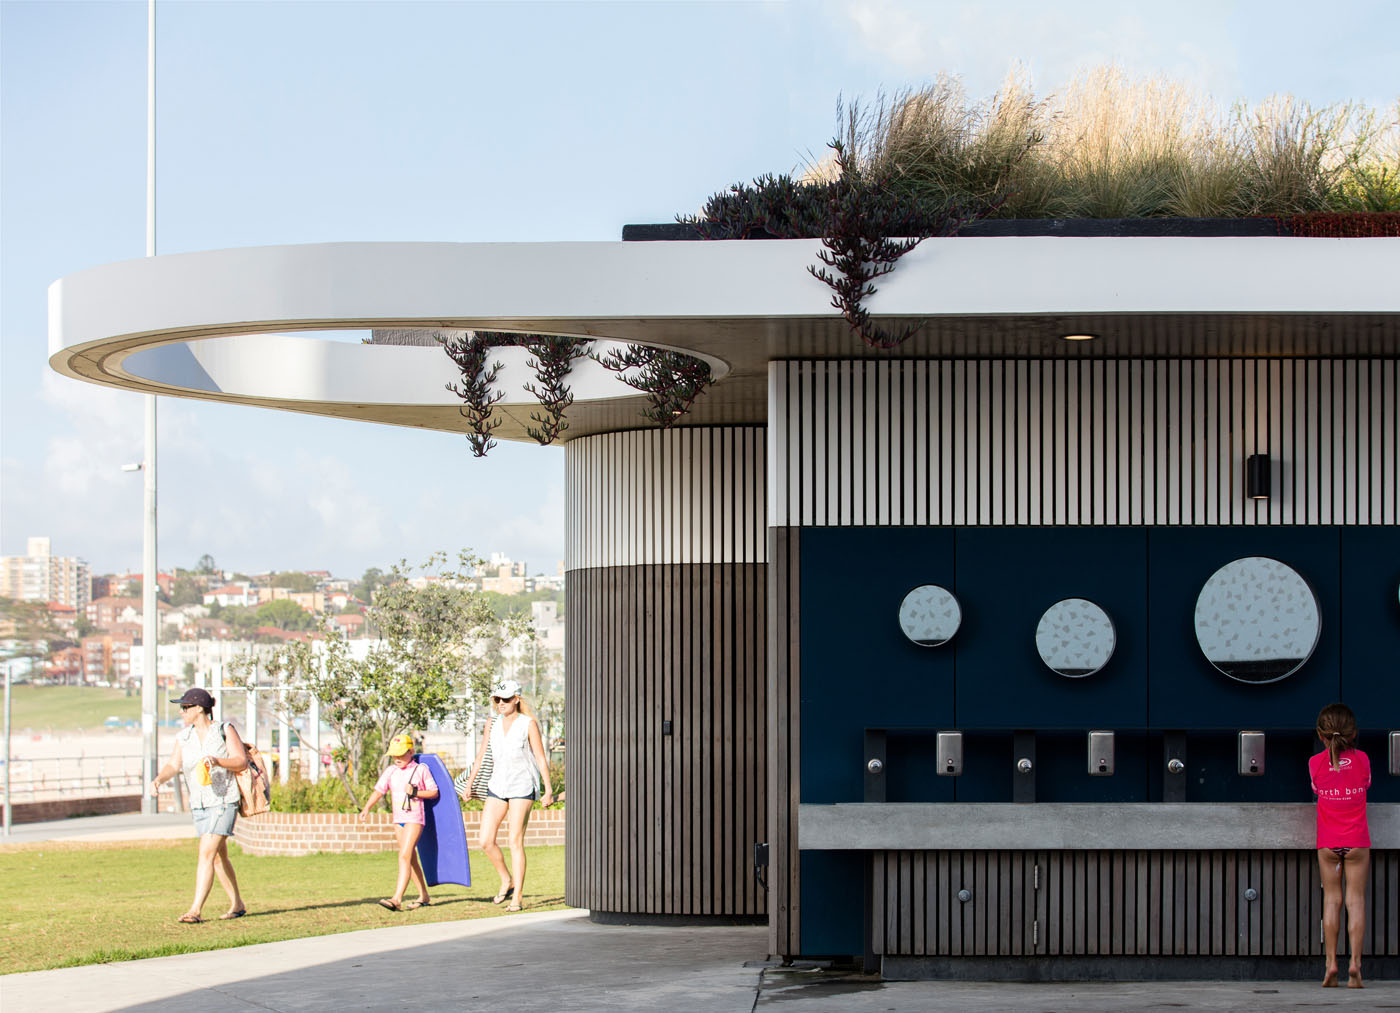 North Bondi Amenities, a public project by award winning Sam Crawford Architects. Clean lines and use of natural timber facade.